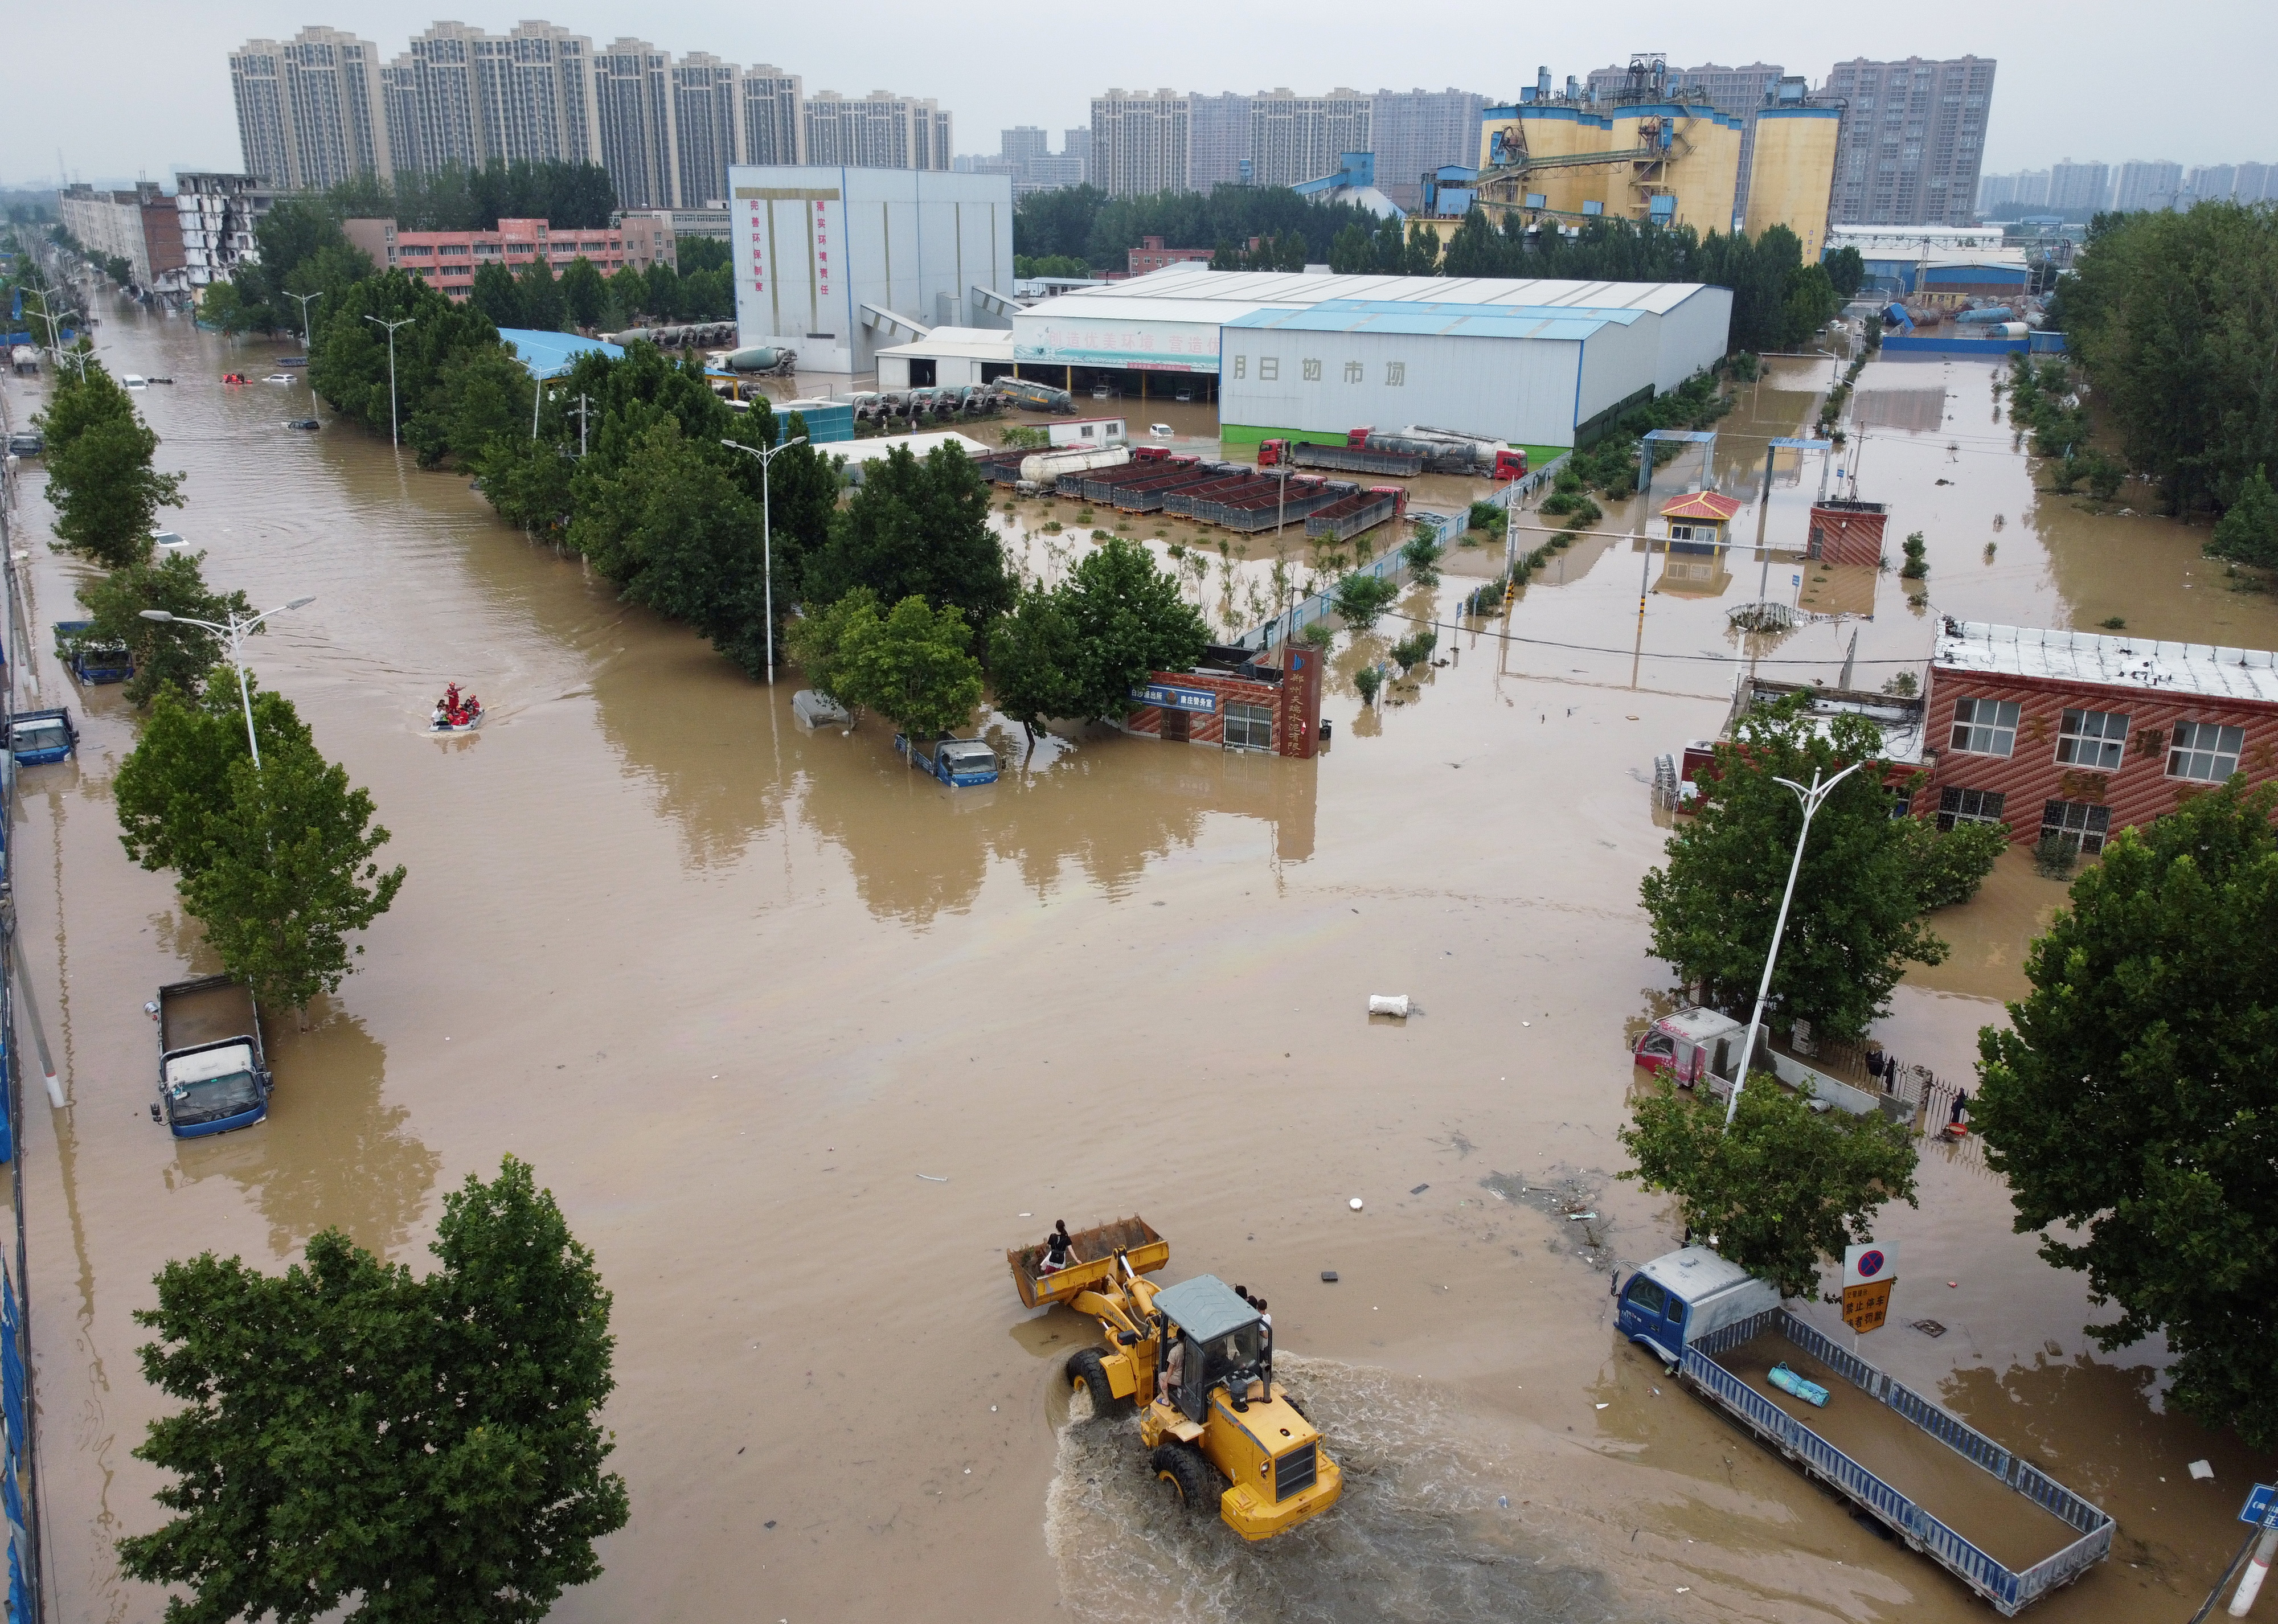 An aerial view shows rescue workers evacuating residents on a flooded road following heavy rainfall in Zhengzhou, Henan province, China July 22, 2021. Picture taken with a drone.  REUTERS/Aly Song/File Photo